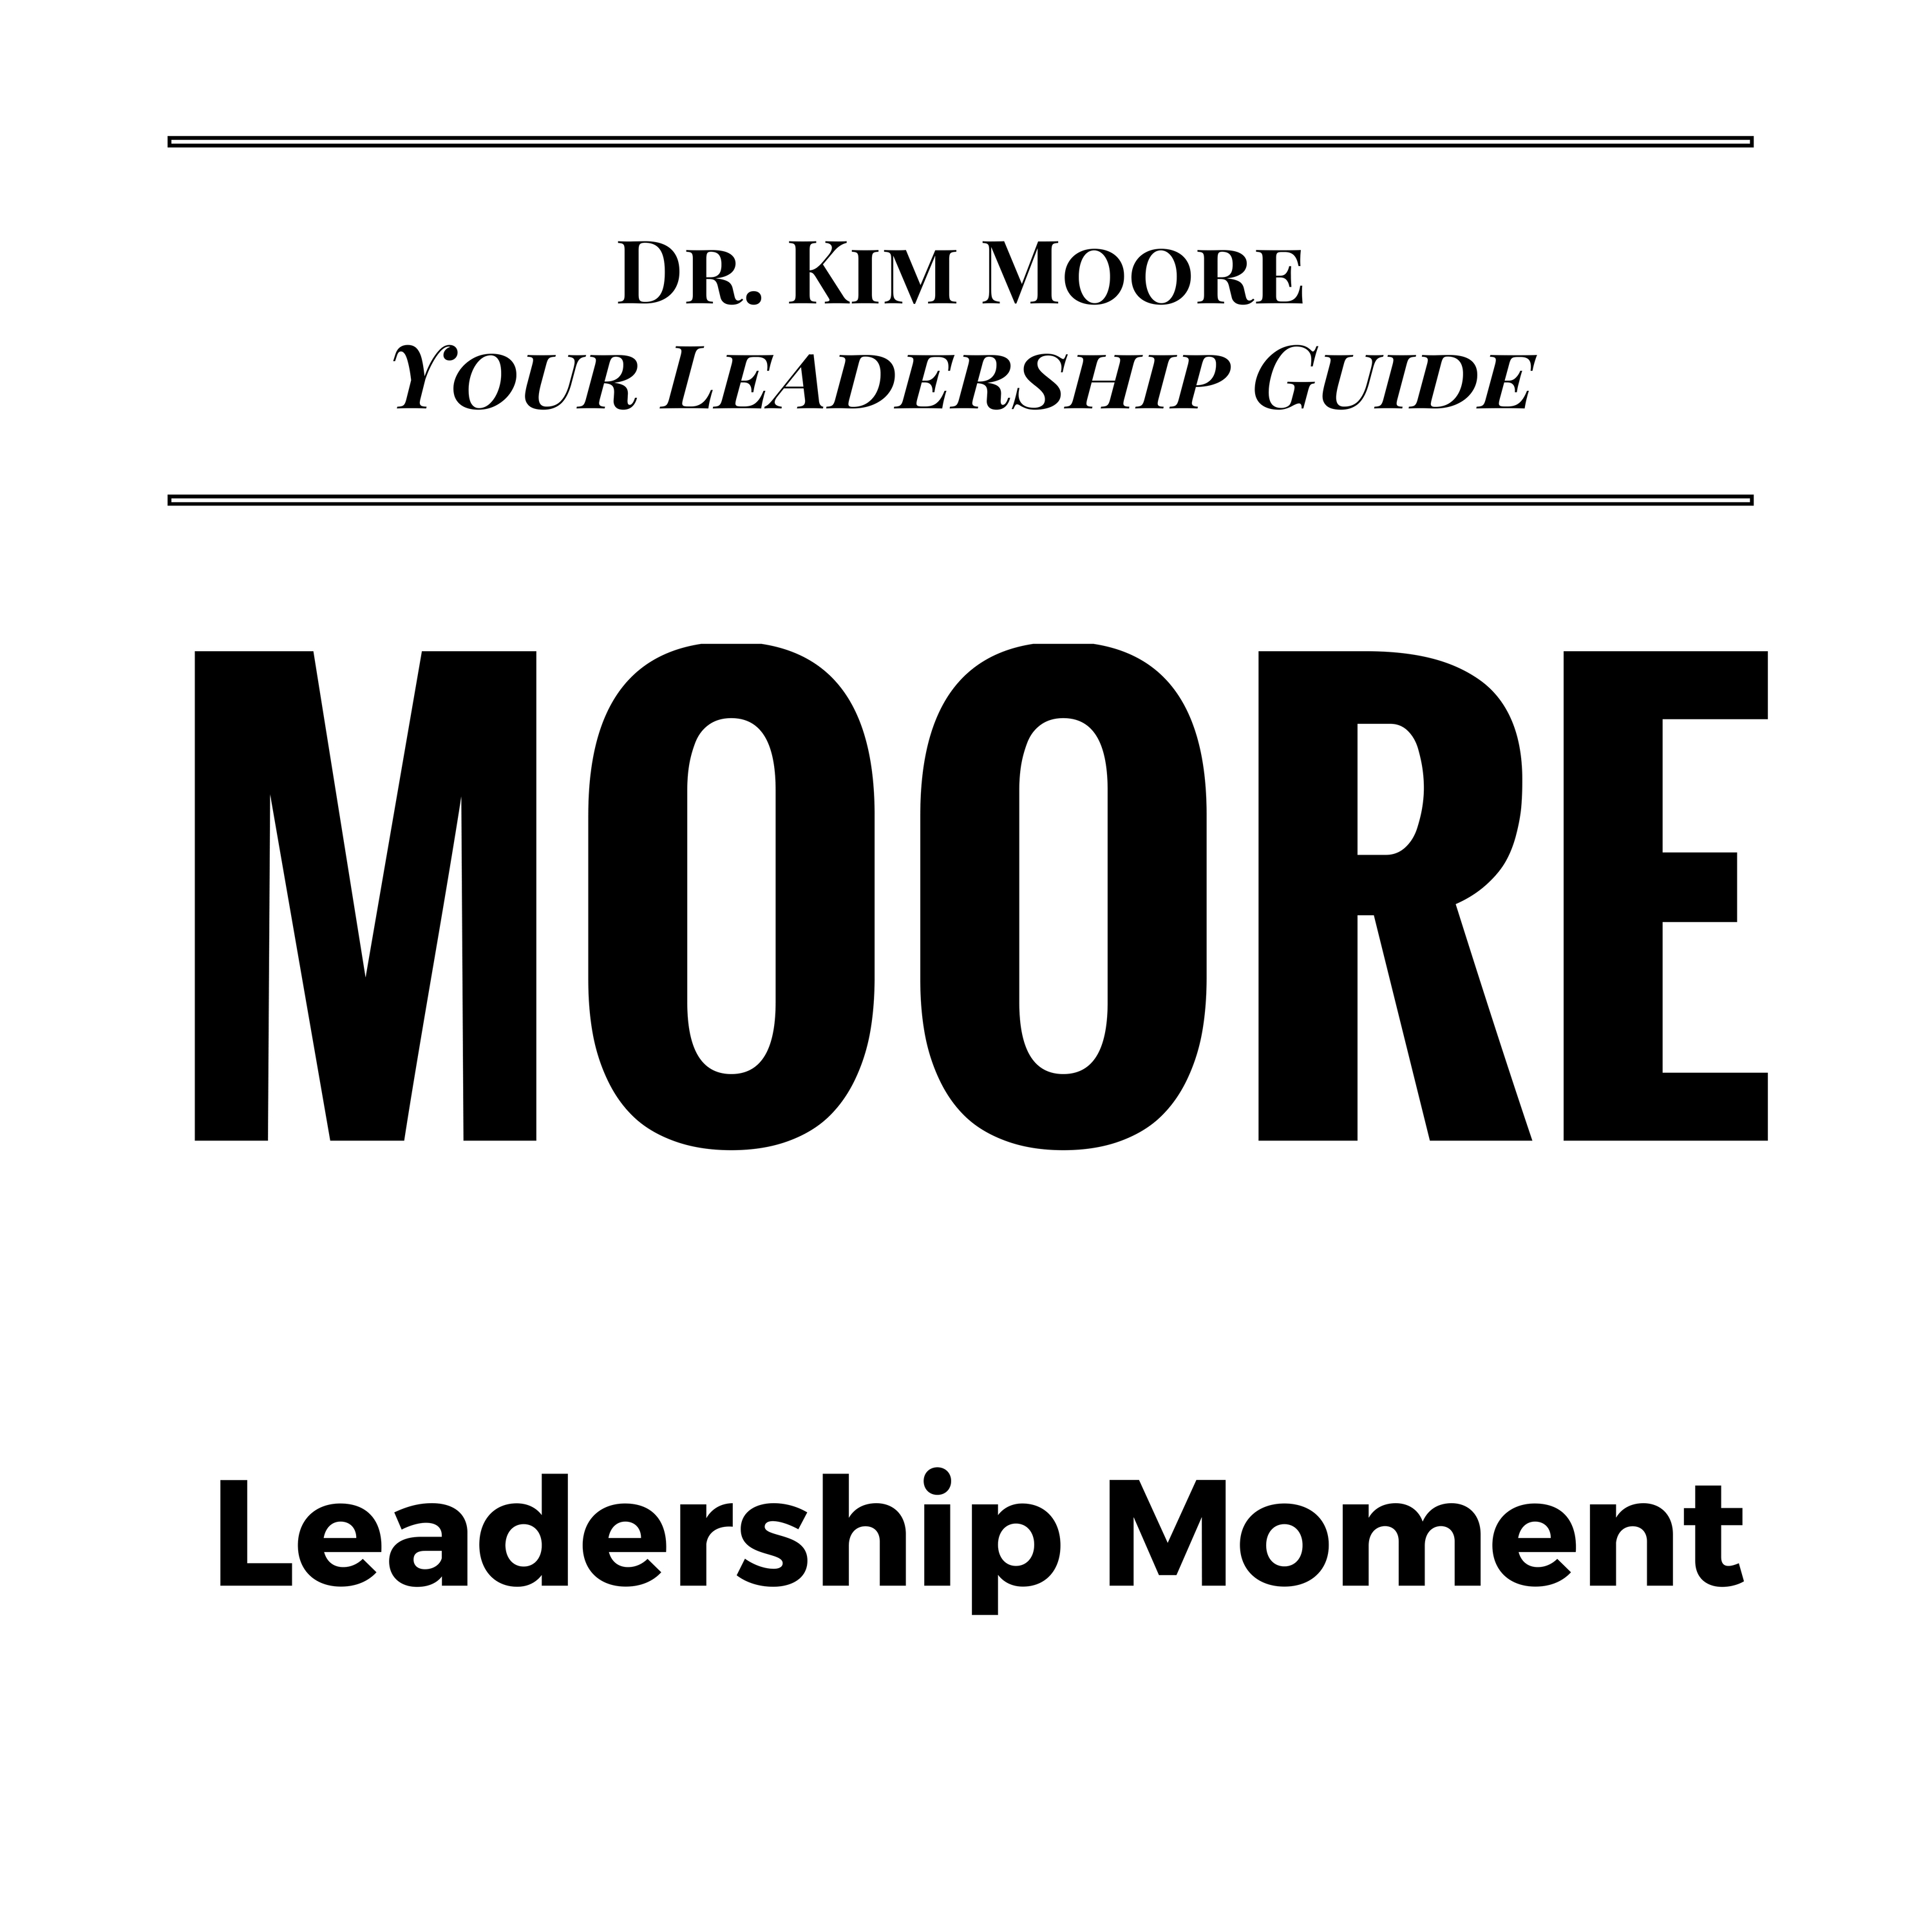 "Dress For Success Quotes Why Leaders Should Dress ""one Level Up""  Drkim Moore"